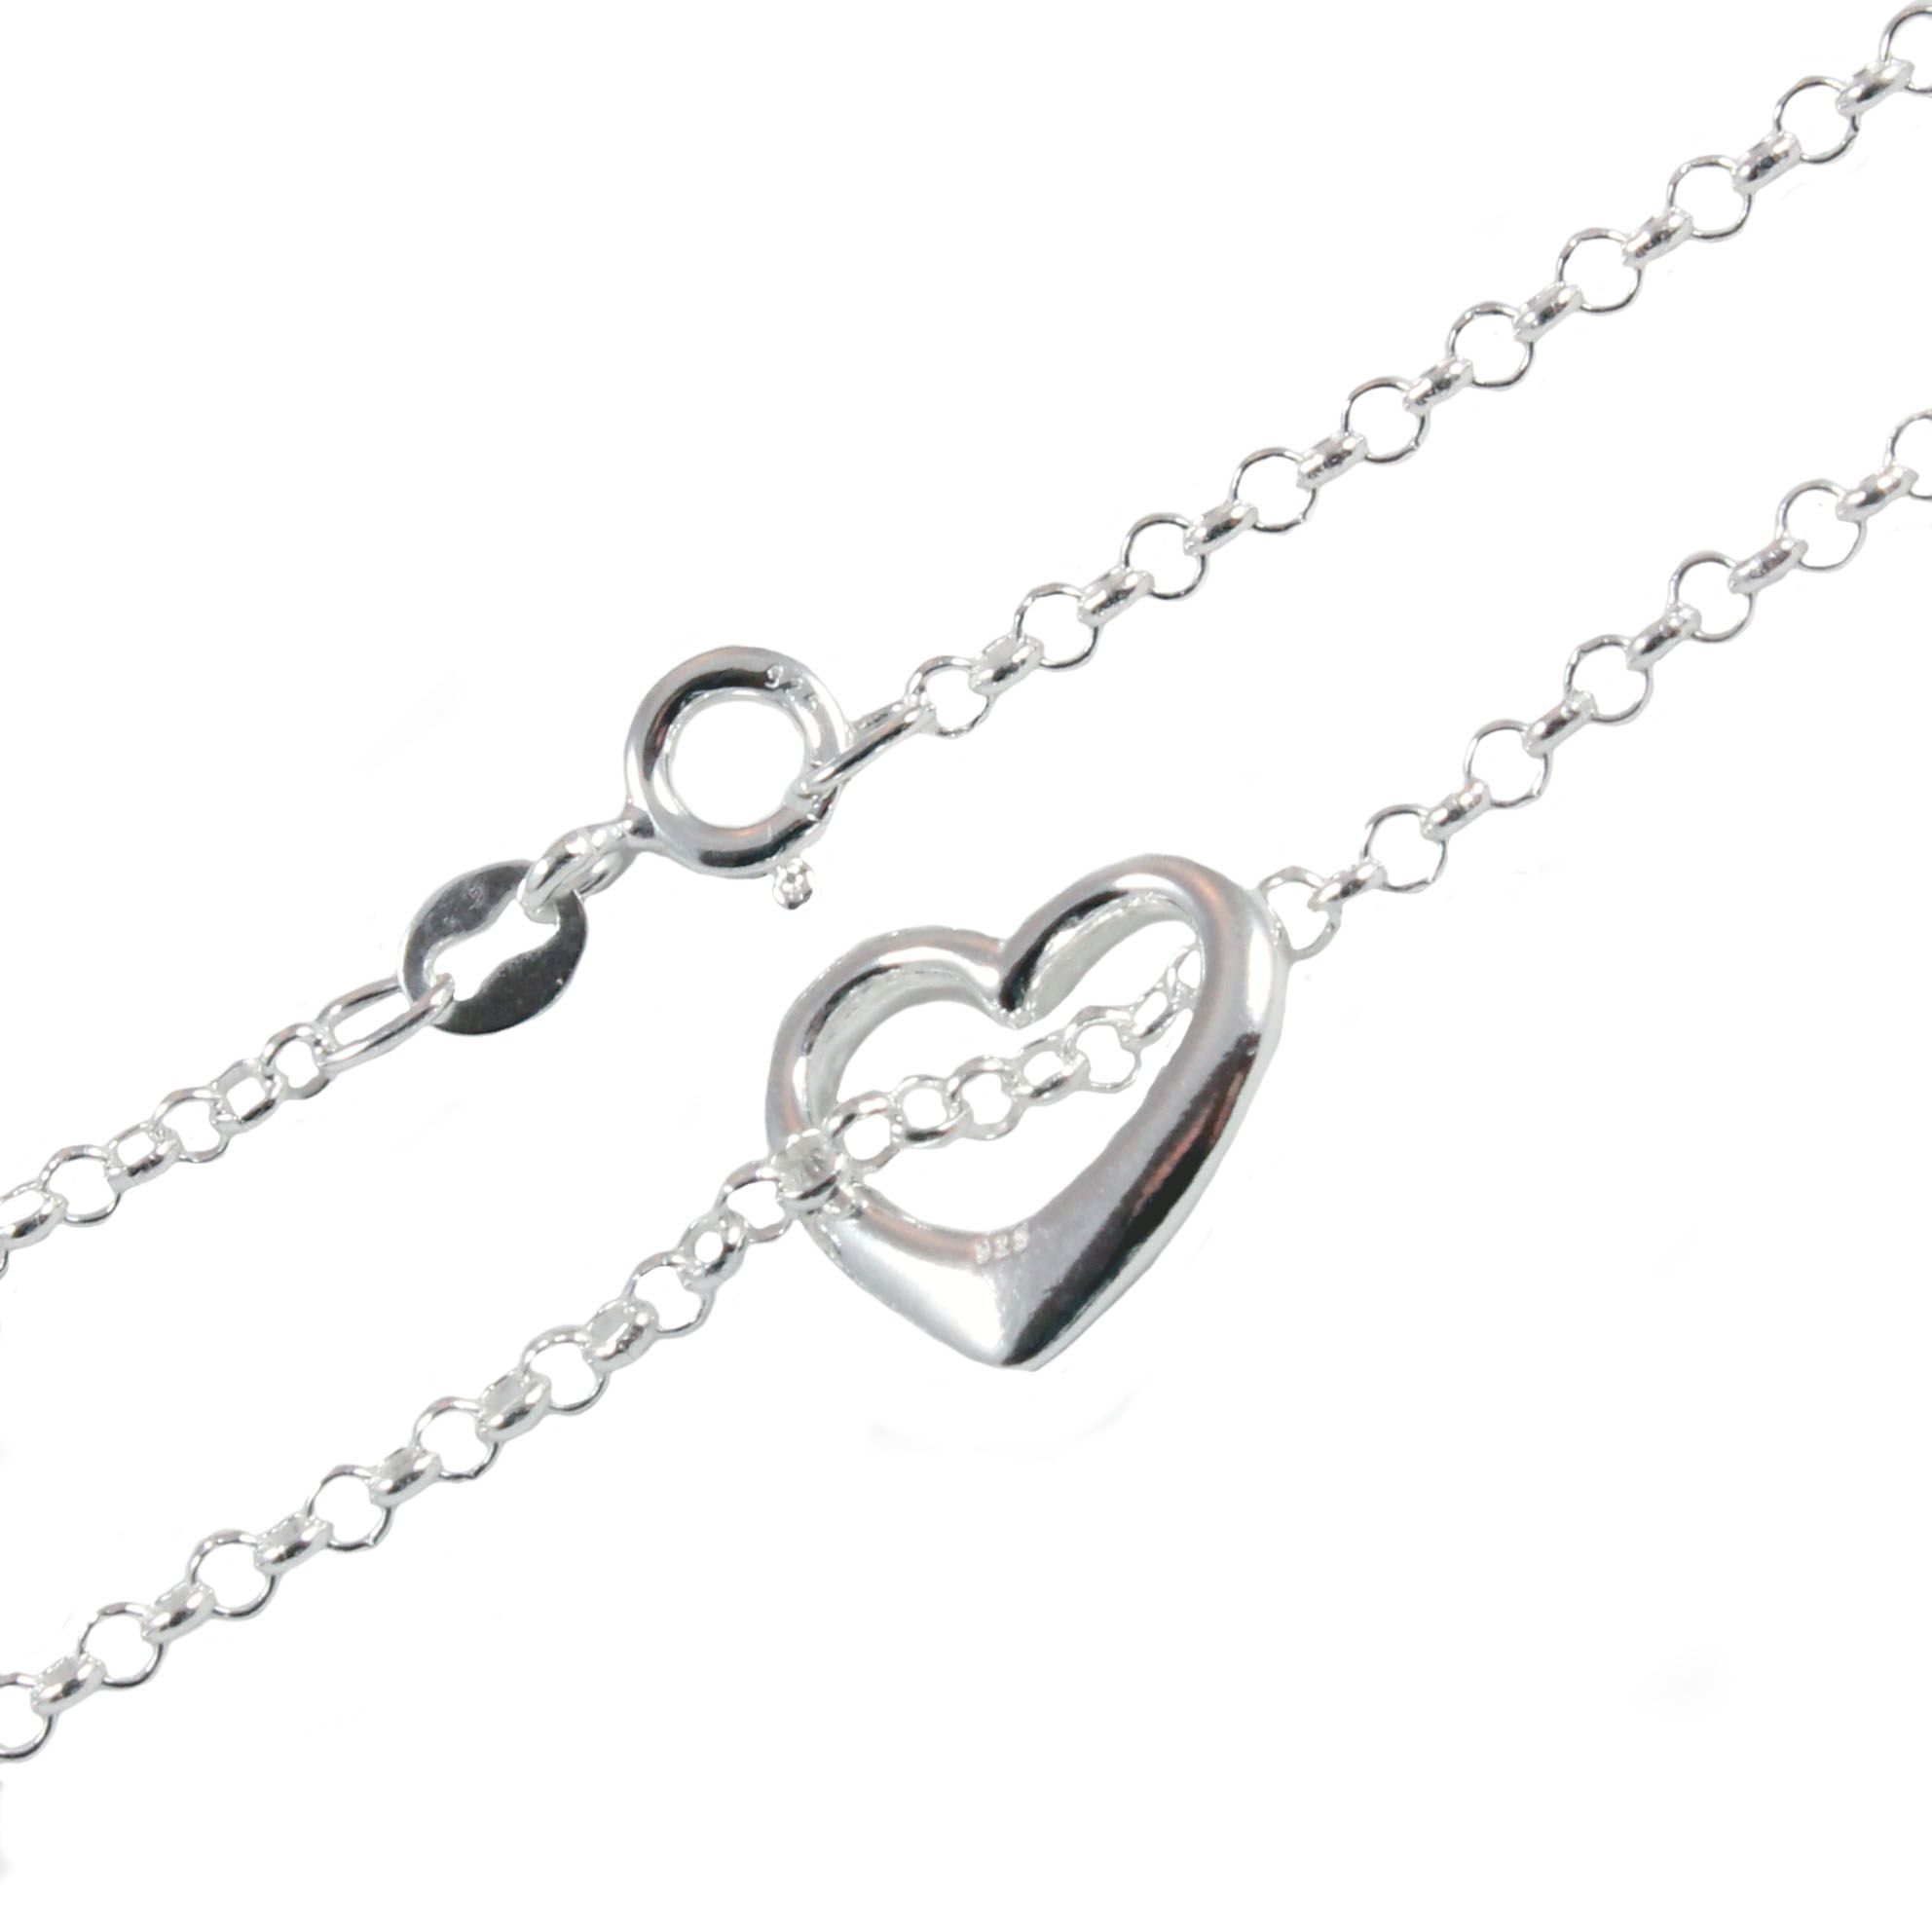 link shaped chain hand by romantic clear sterling anklets details silver in bracelet this is ca expert classic heart and clr zirconia crafted brilliant a anklet designed adorned inlays products with polished cubic ankle